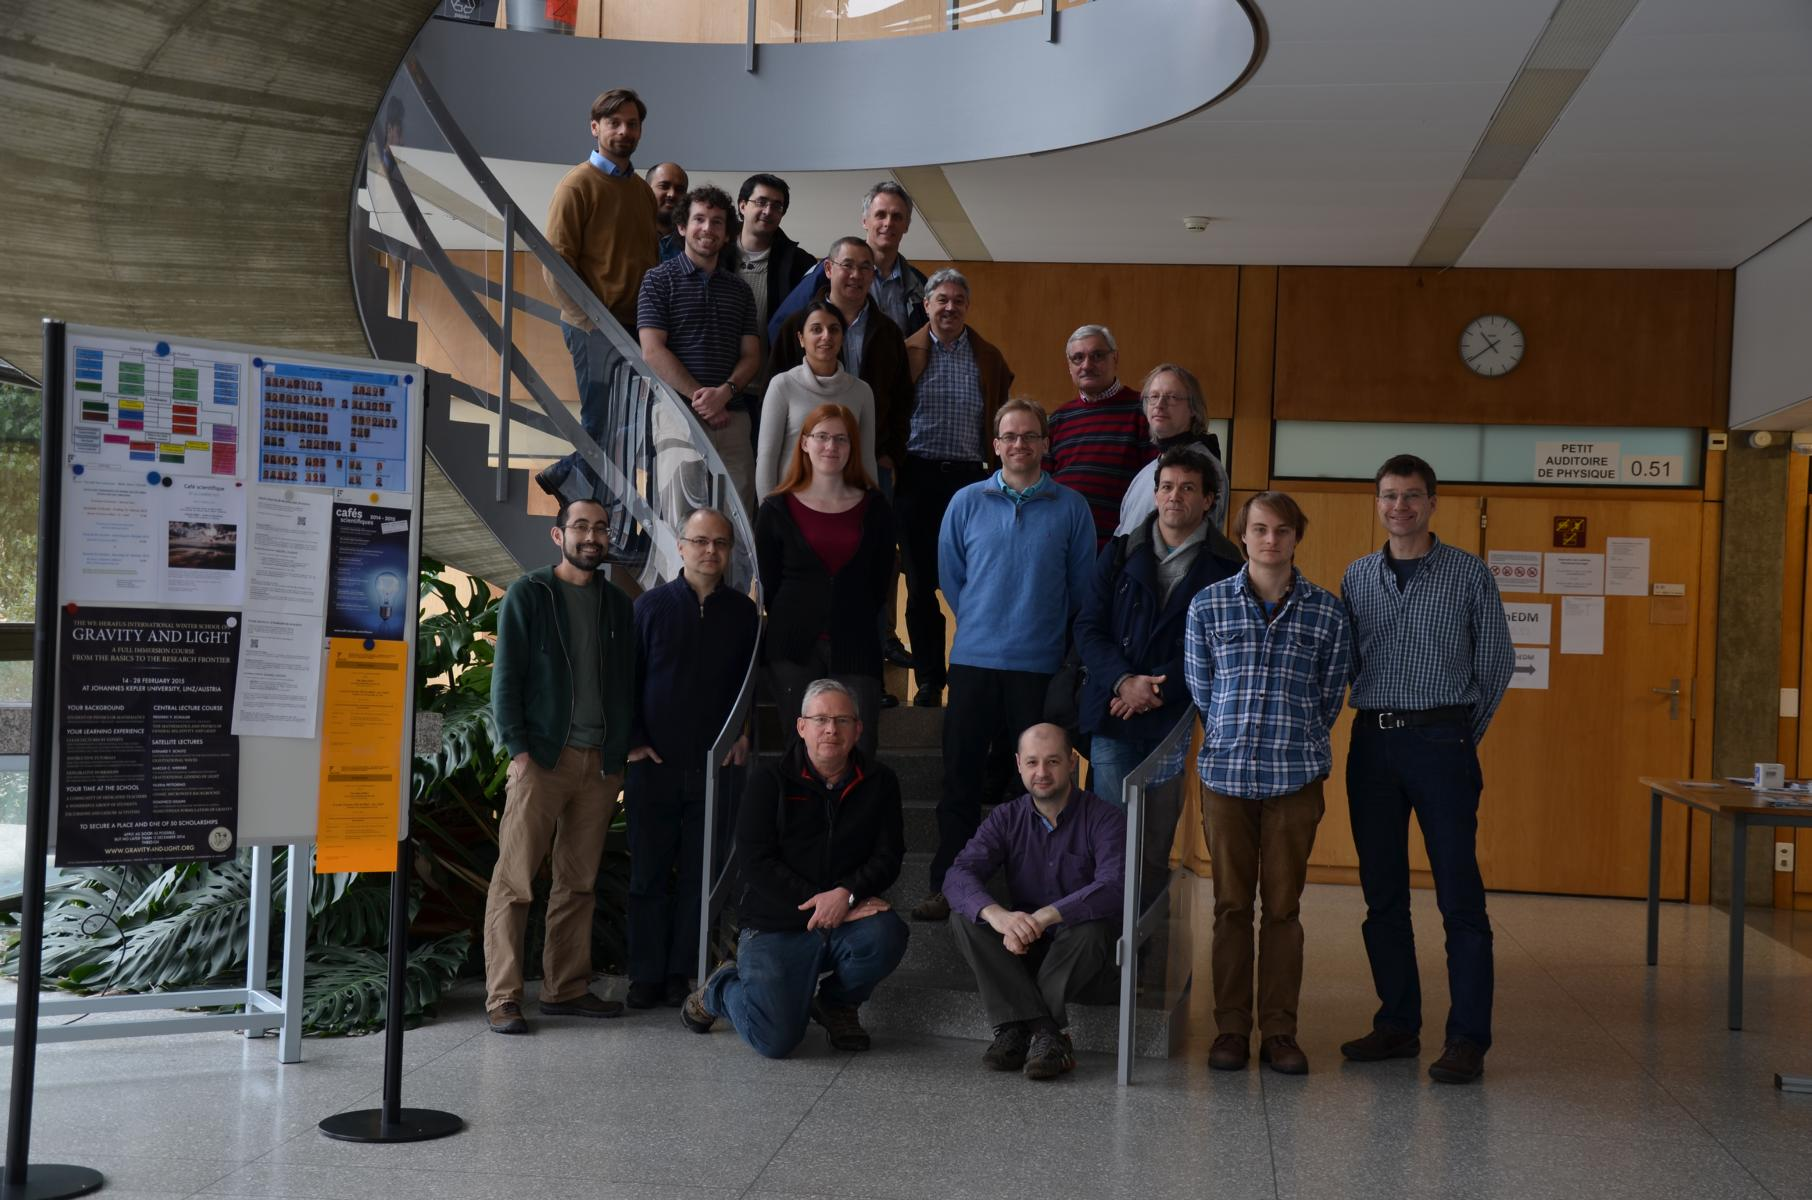 Picture taken at our collaboration meeting at Université de Fribourg, 17. January 2015